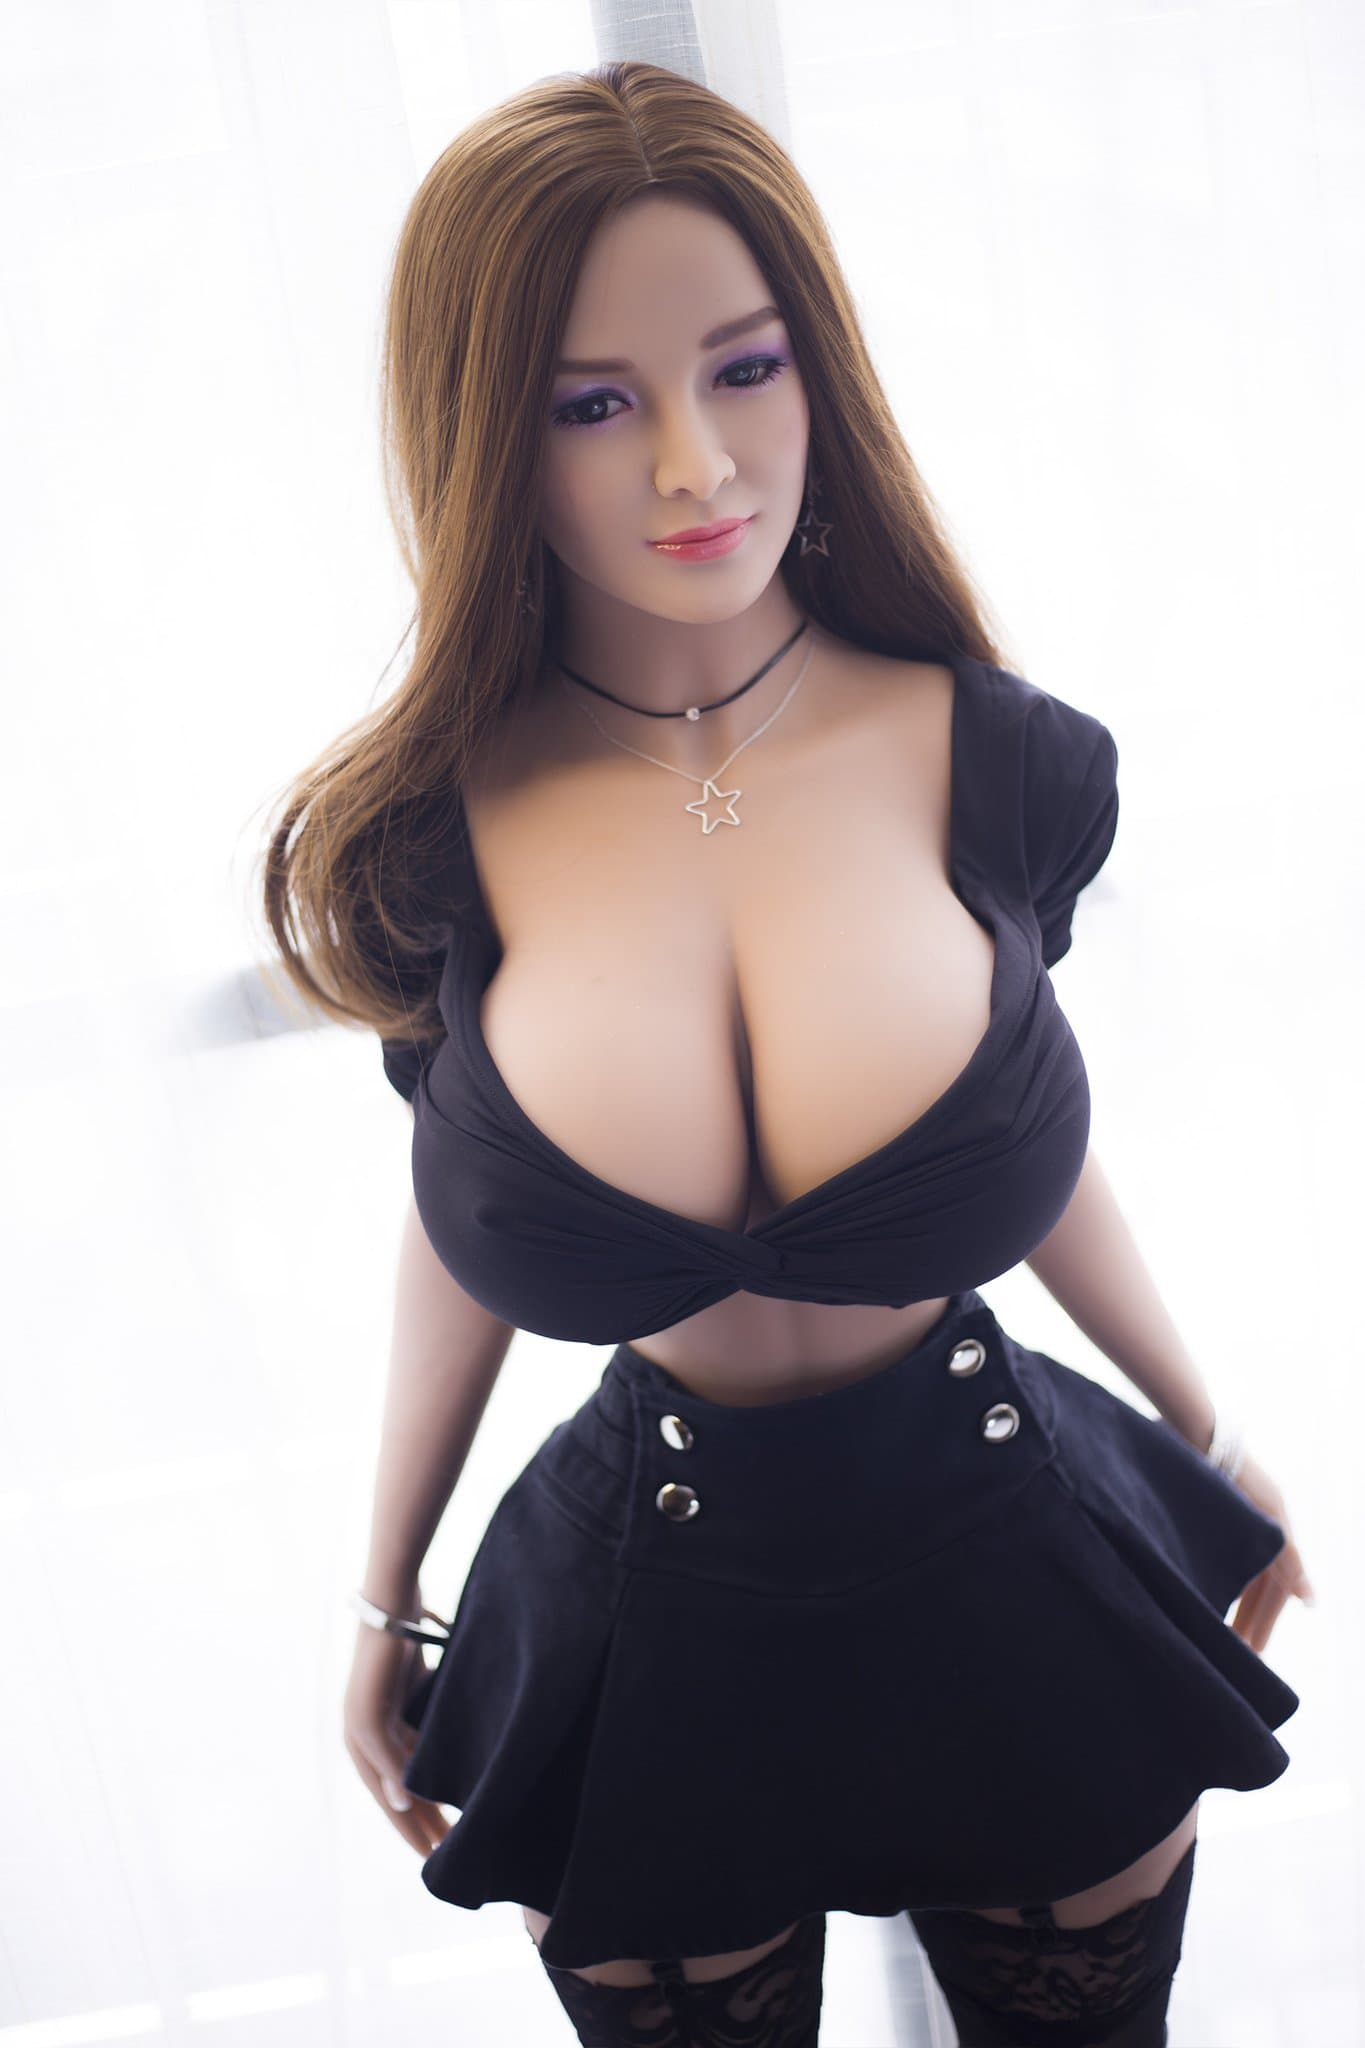 reba 153cm brown hair curvy giant massive tits jy athletic tpe sex doll(11)